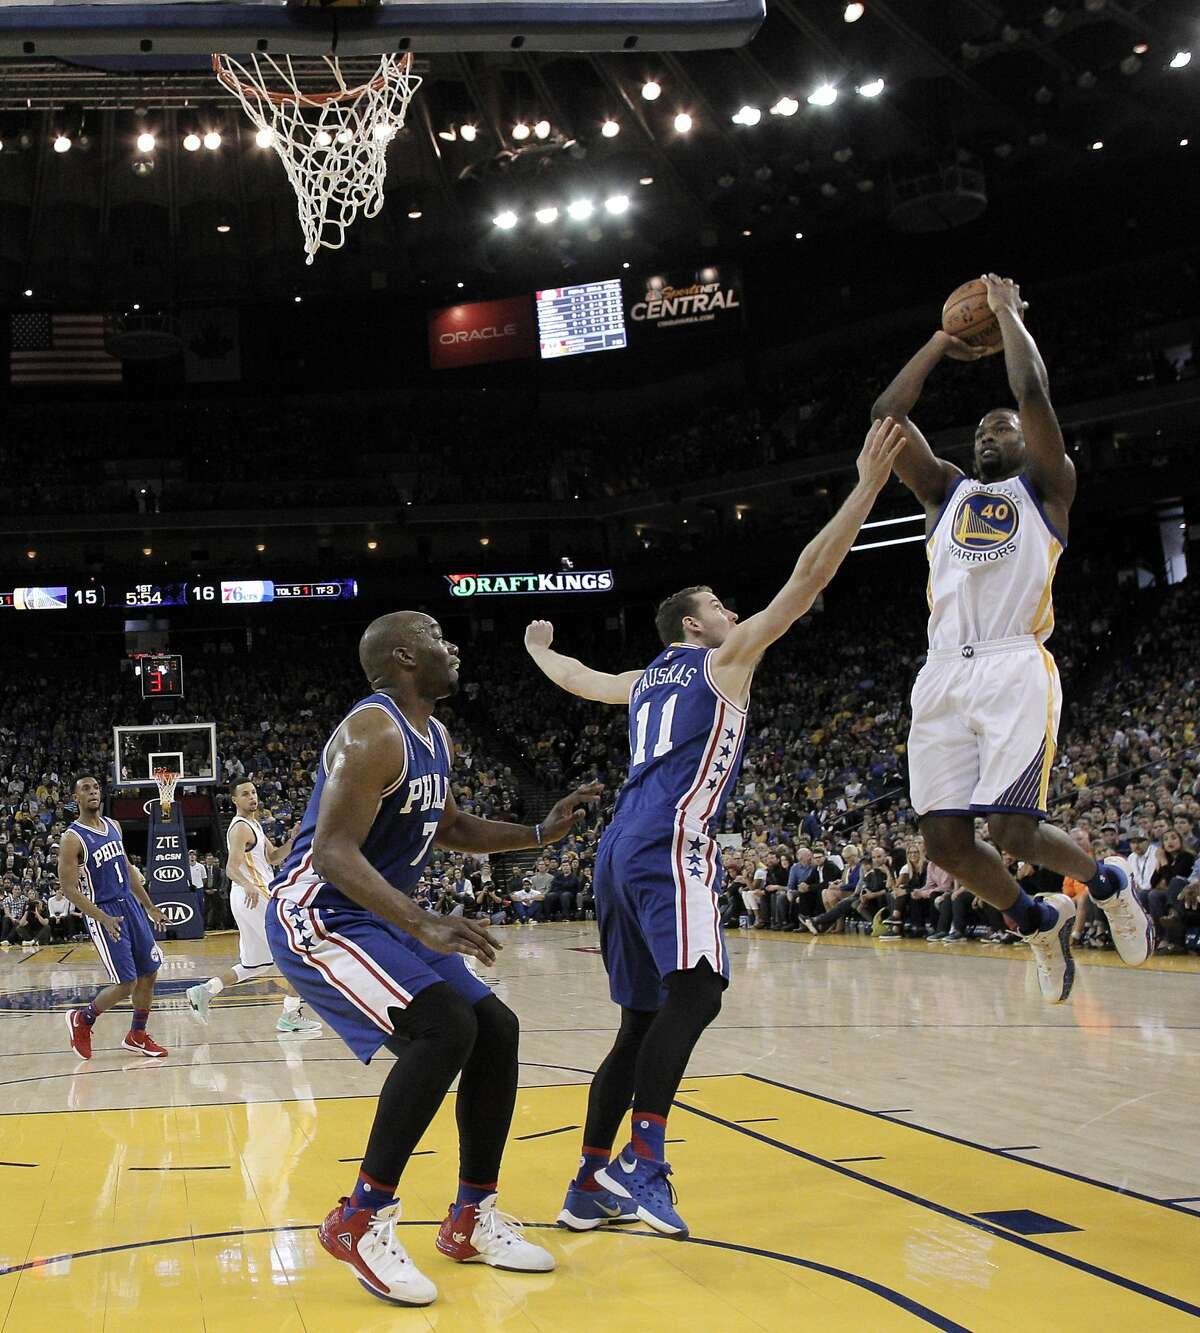 Harrison Barnes (40) puts up a jumper in the first half as the Golden State Warriors played the Philadelphia 76ers at Oracle Arena in Oakland, Calif., on Sunday, March 27, 2016.